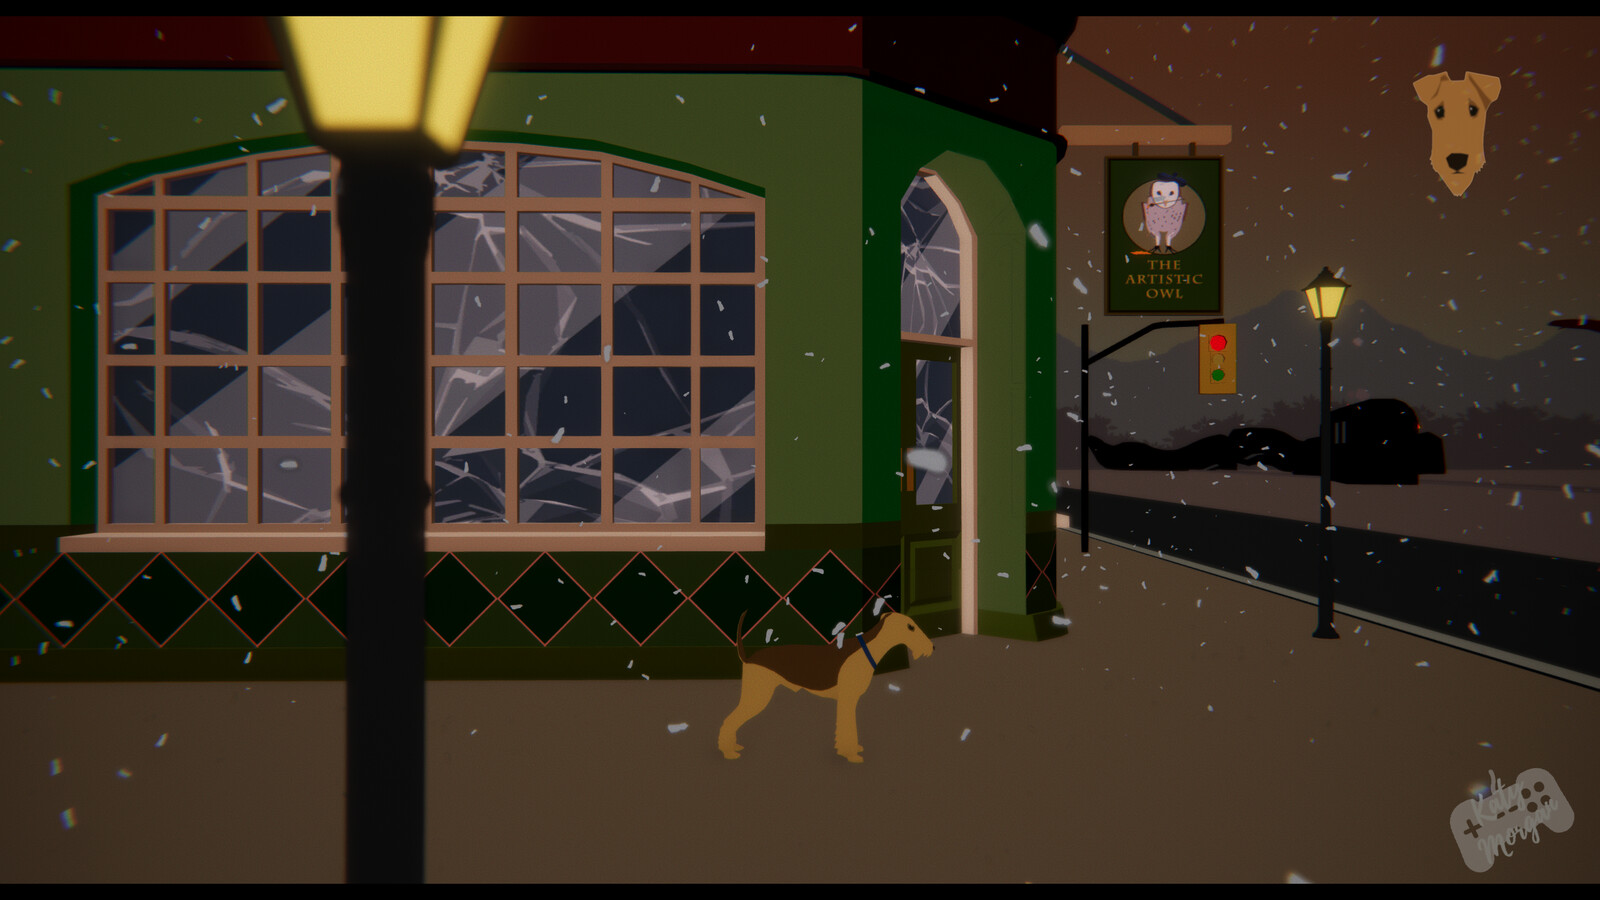 Finally the dog has reached the end of the town where the local pub is located. All assets here are 3D made by myself in Maya.